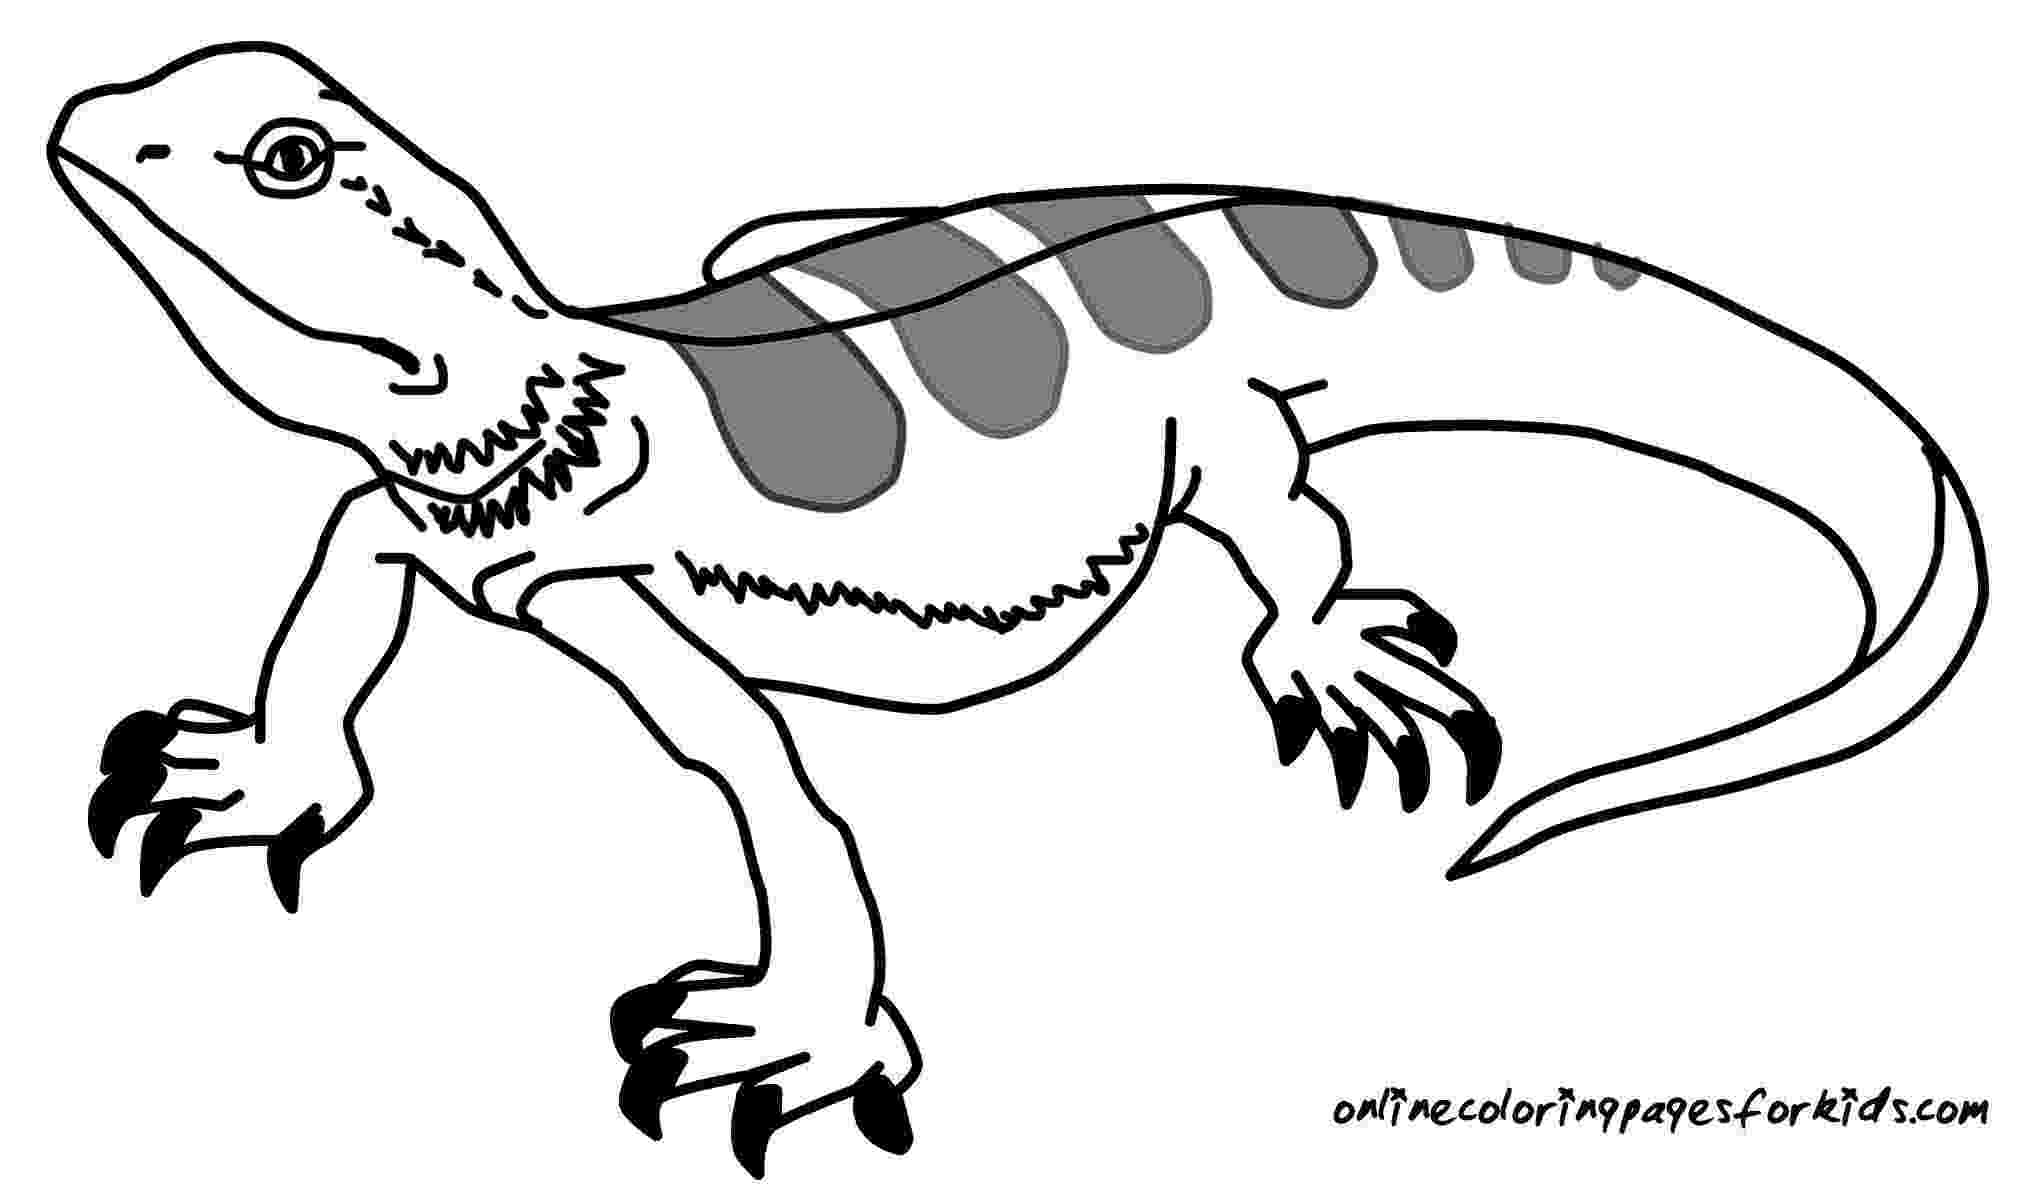 lizard pictures to color top 10 free printable lizard coloring pages online pictures lizard to color